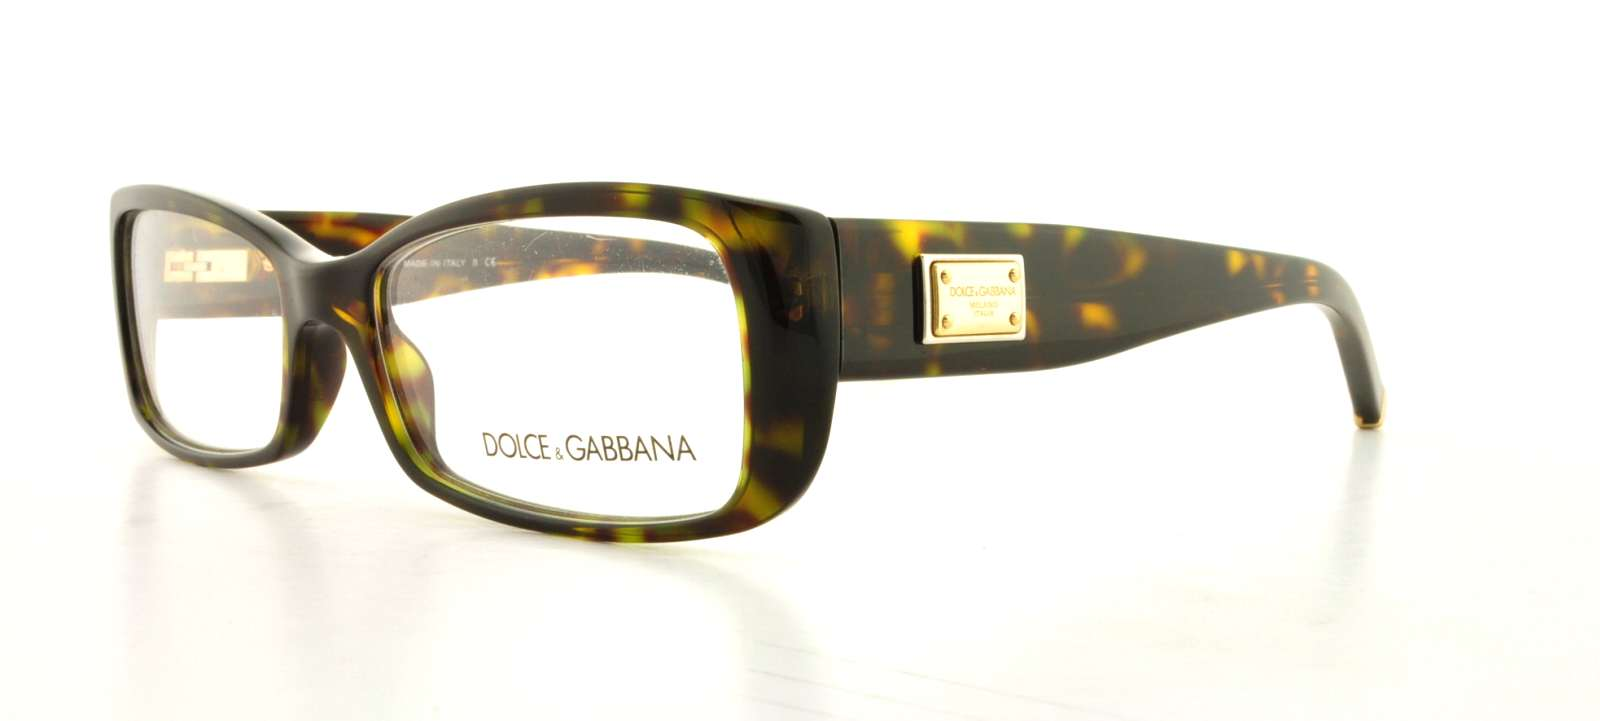 Picture of Dolce & Gabbana DG3106